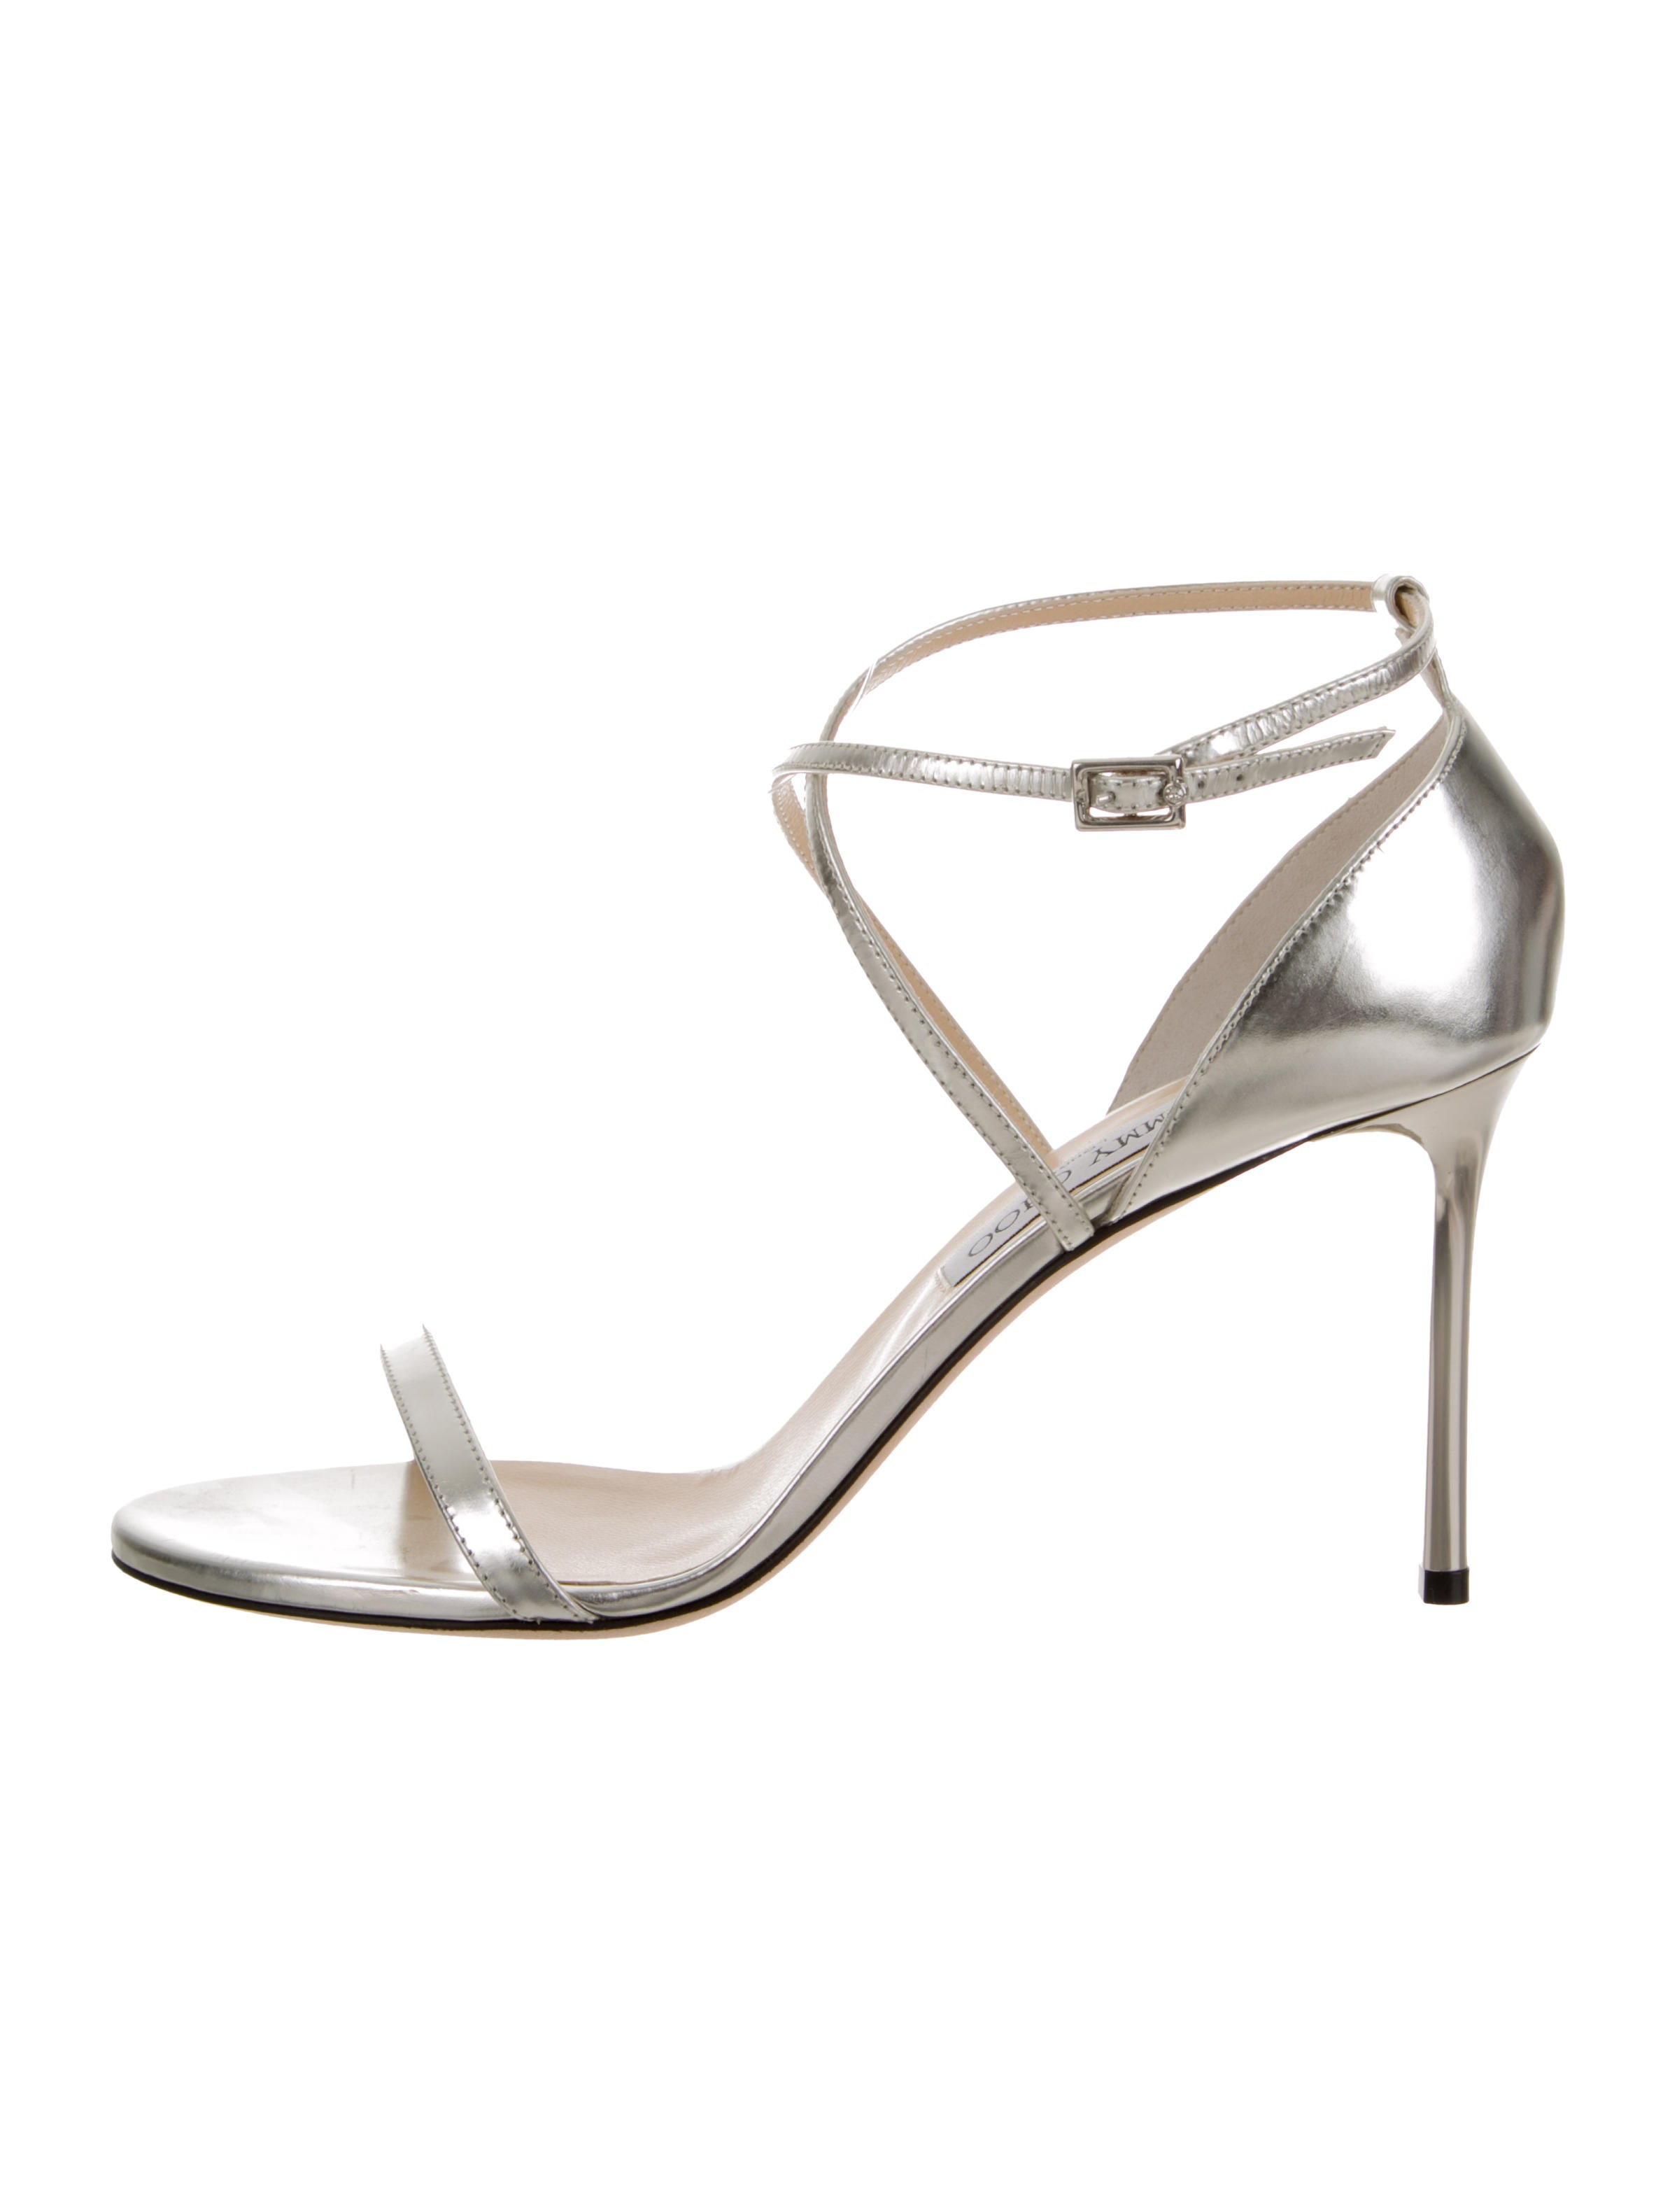 1352a6e988bbac Jimmy Choo Metallic Leather Wrap-Around Sandals - Shoes - JIM100312 ...